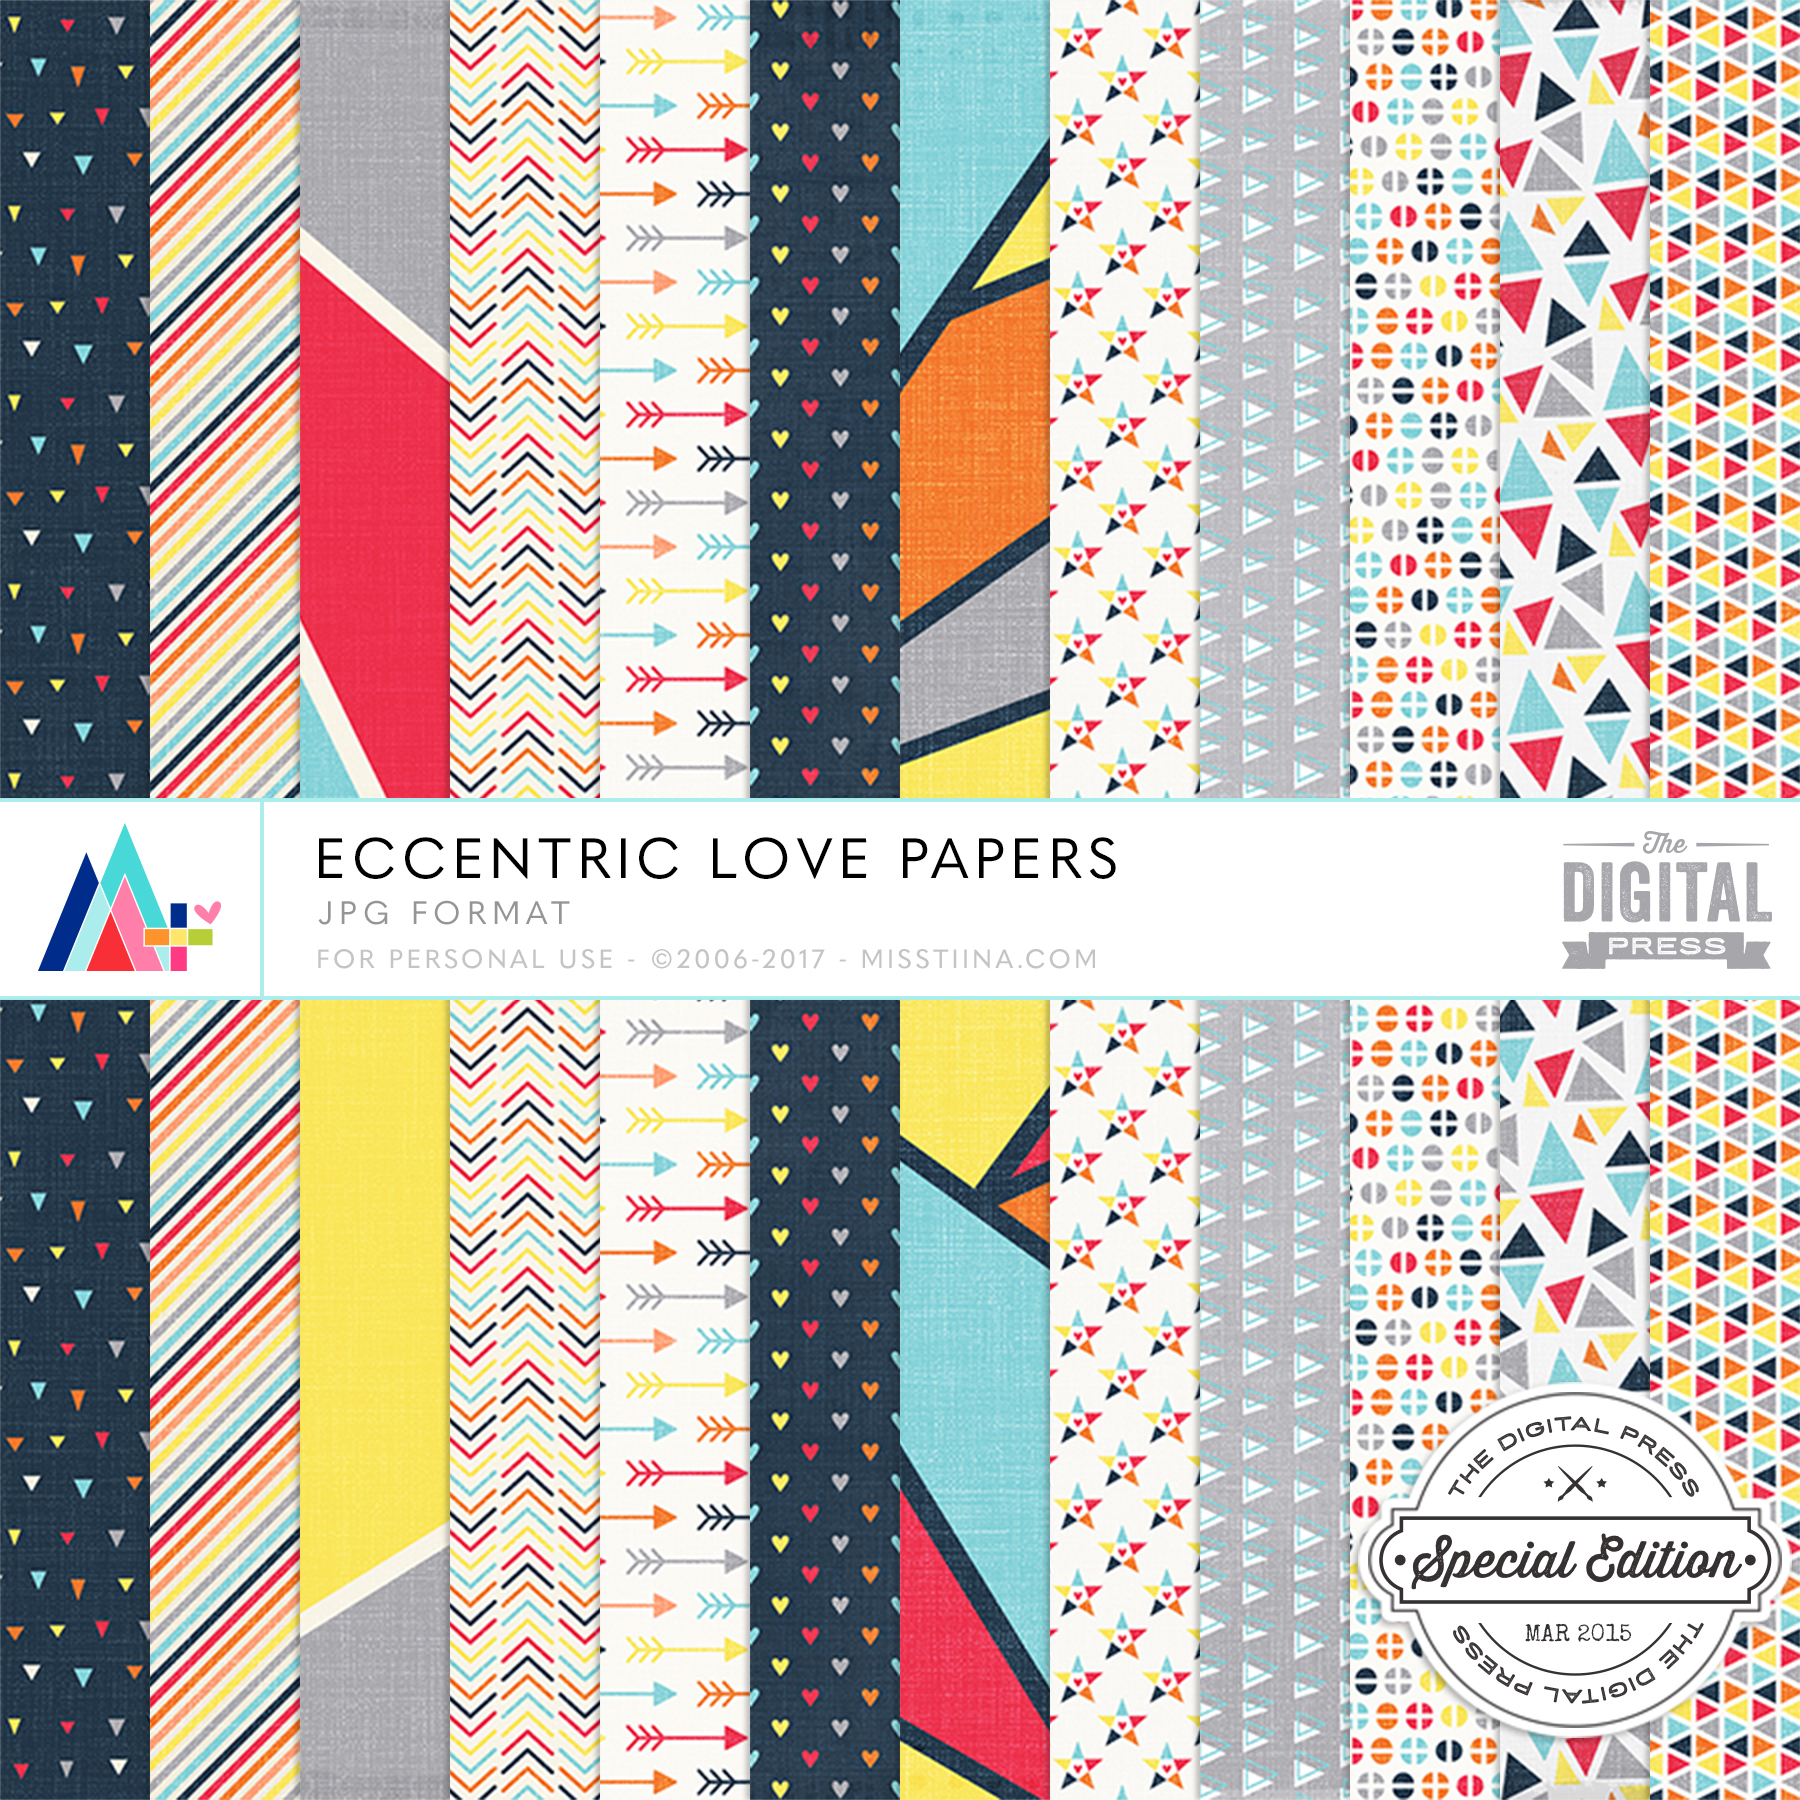 Eccentric Love Papers